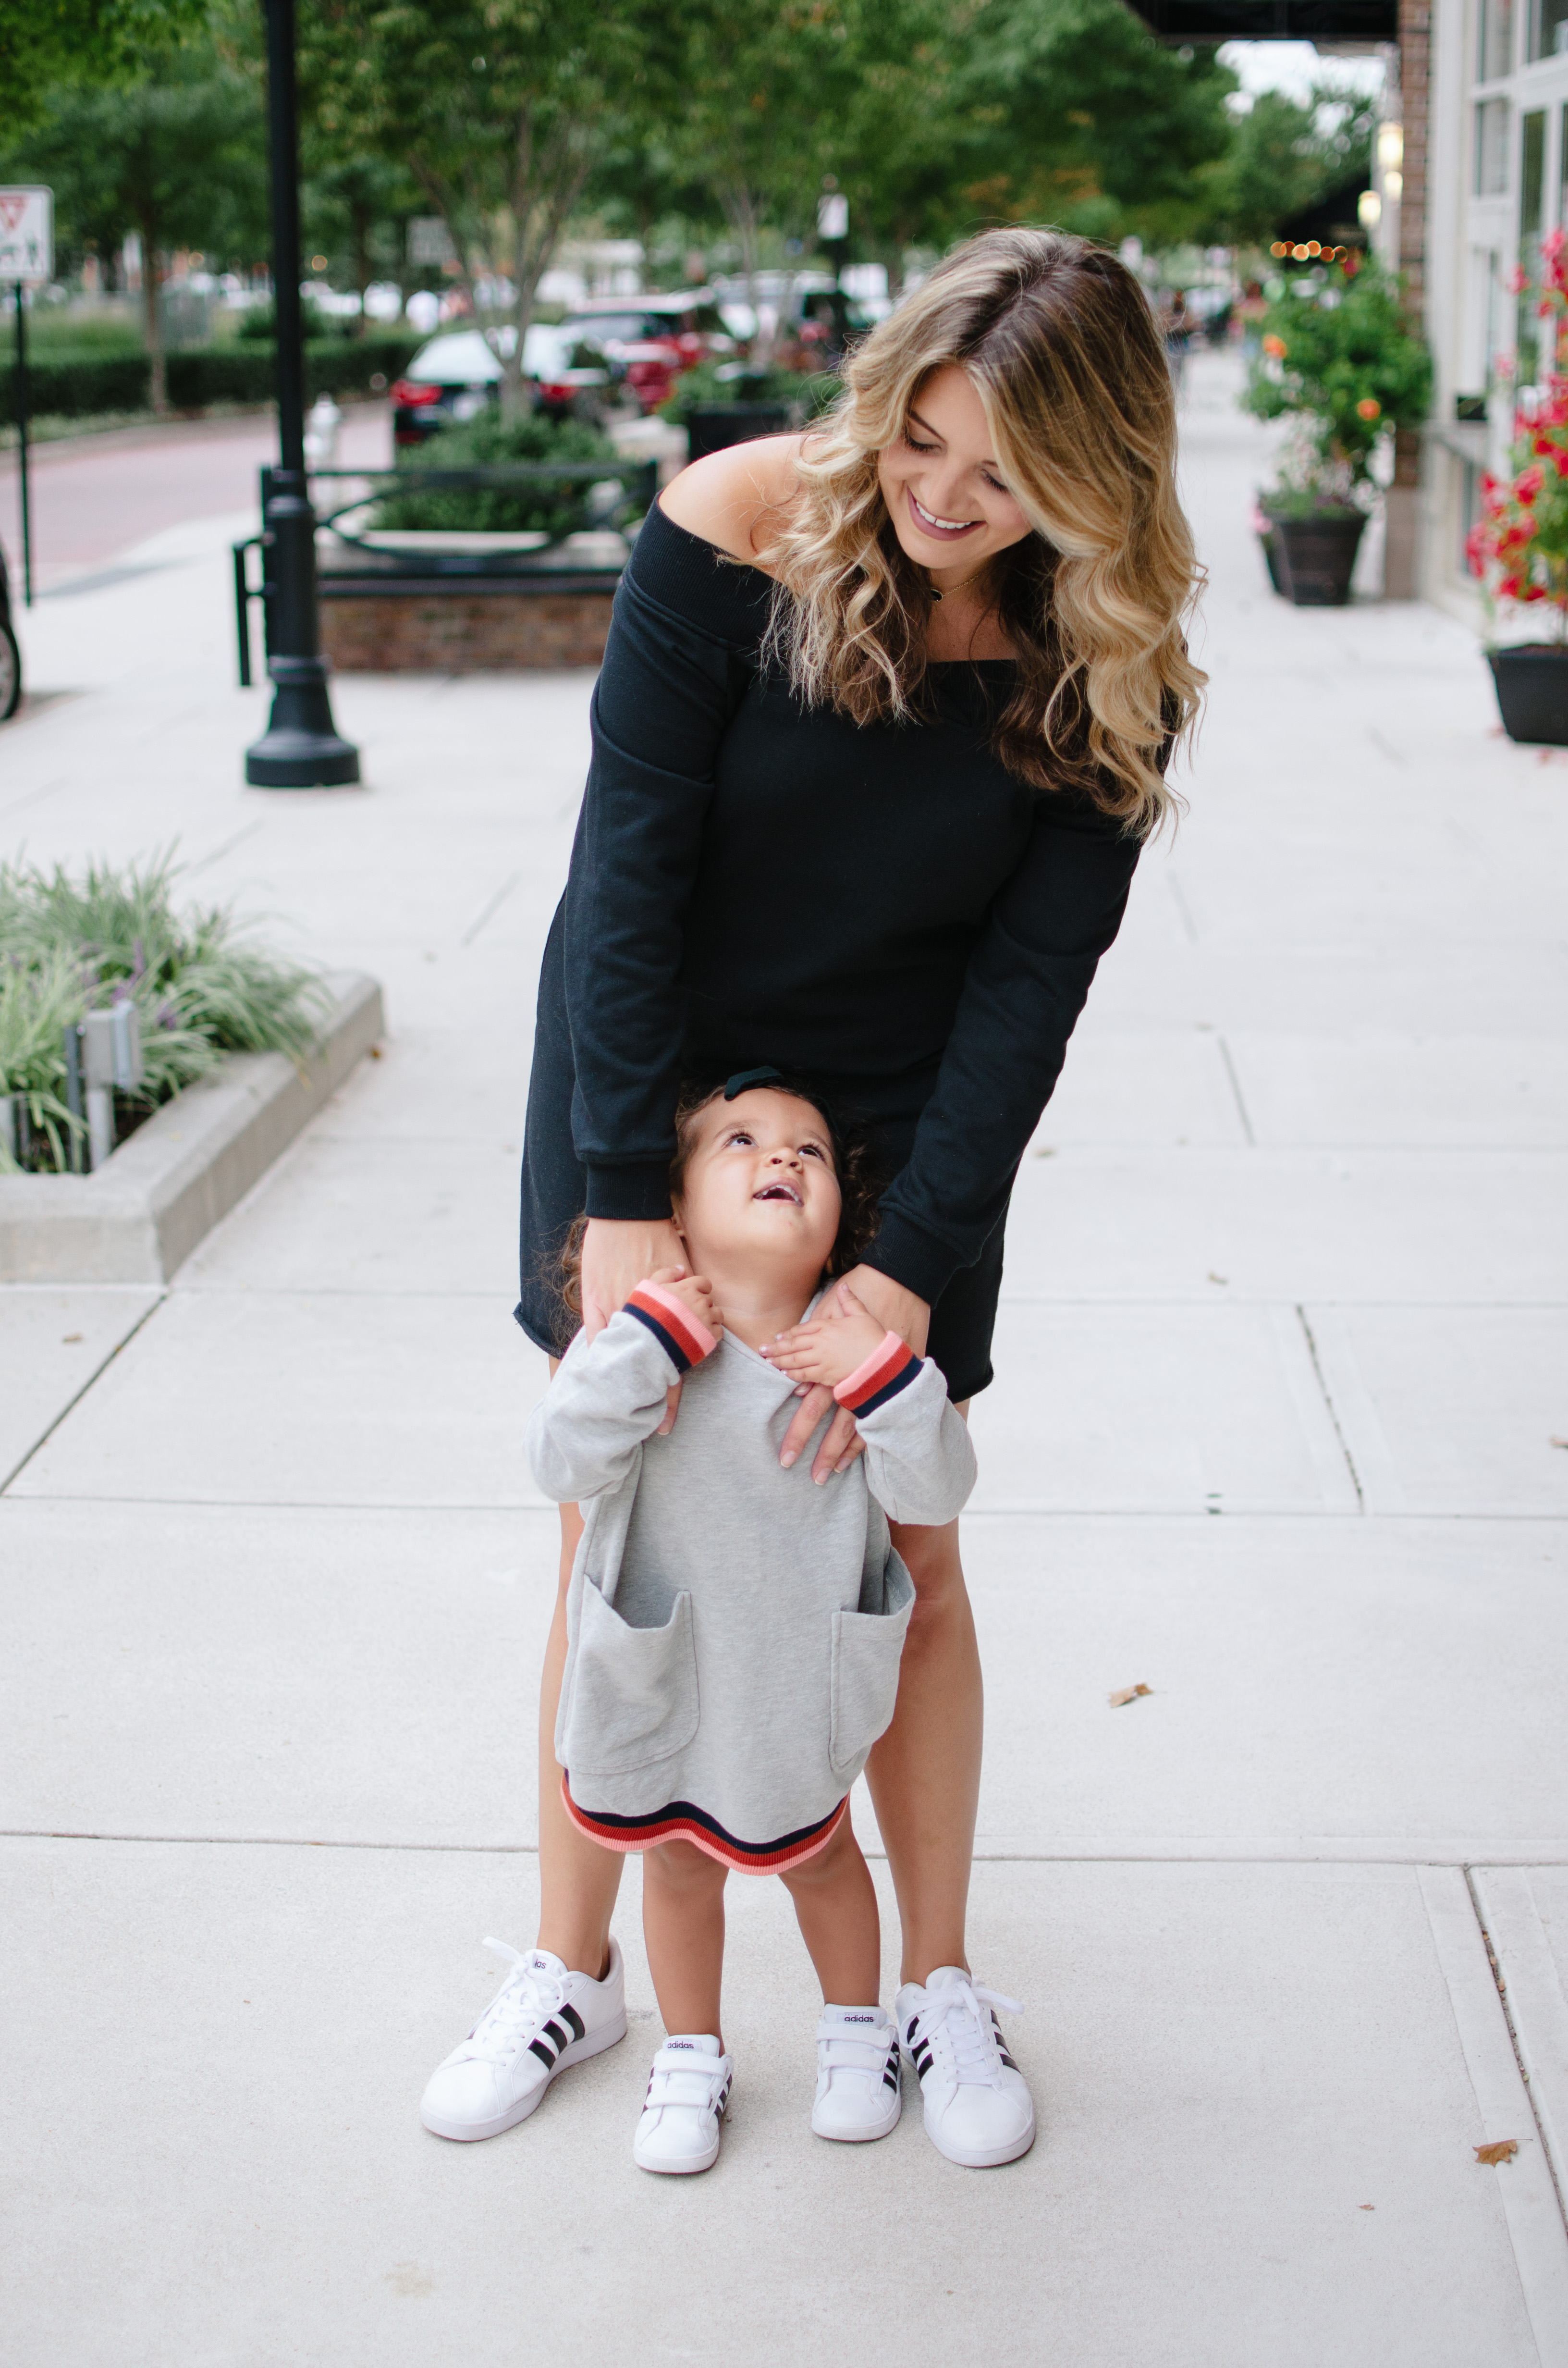 mommy and me fall outfits - mother daughter sweatshirt dresses | See more mommy and me outfits at bylaurenm.com!